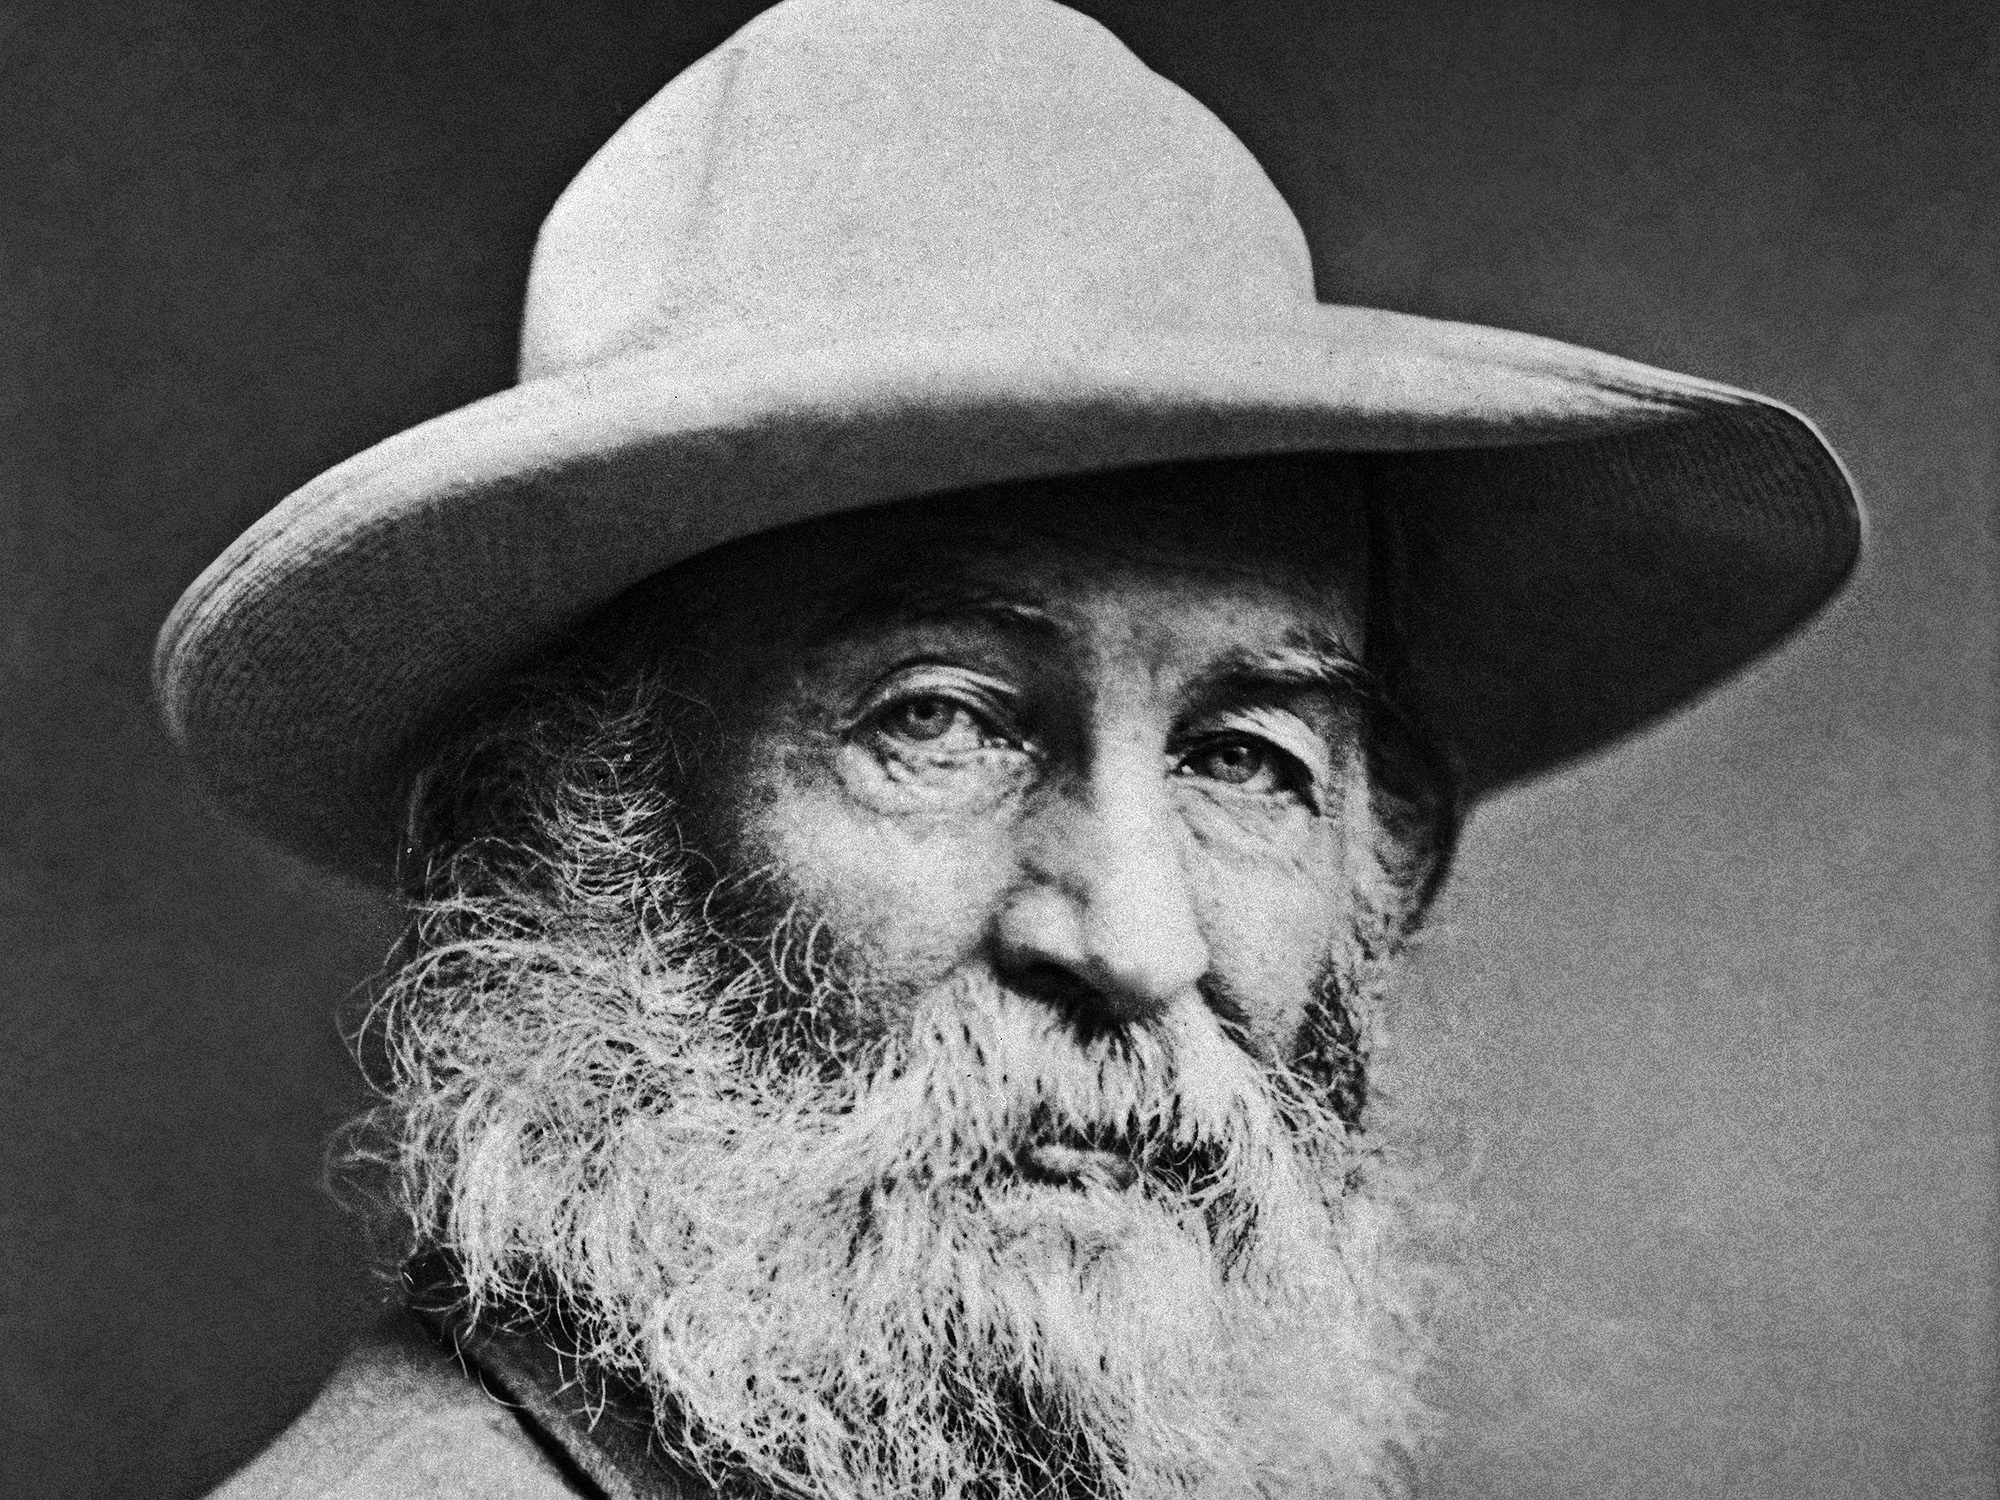 Retrato do poeta  Walt Whitman, 1870. (Crédito: Underwood Archives/Getty Images)